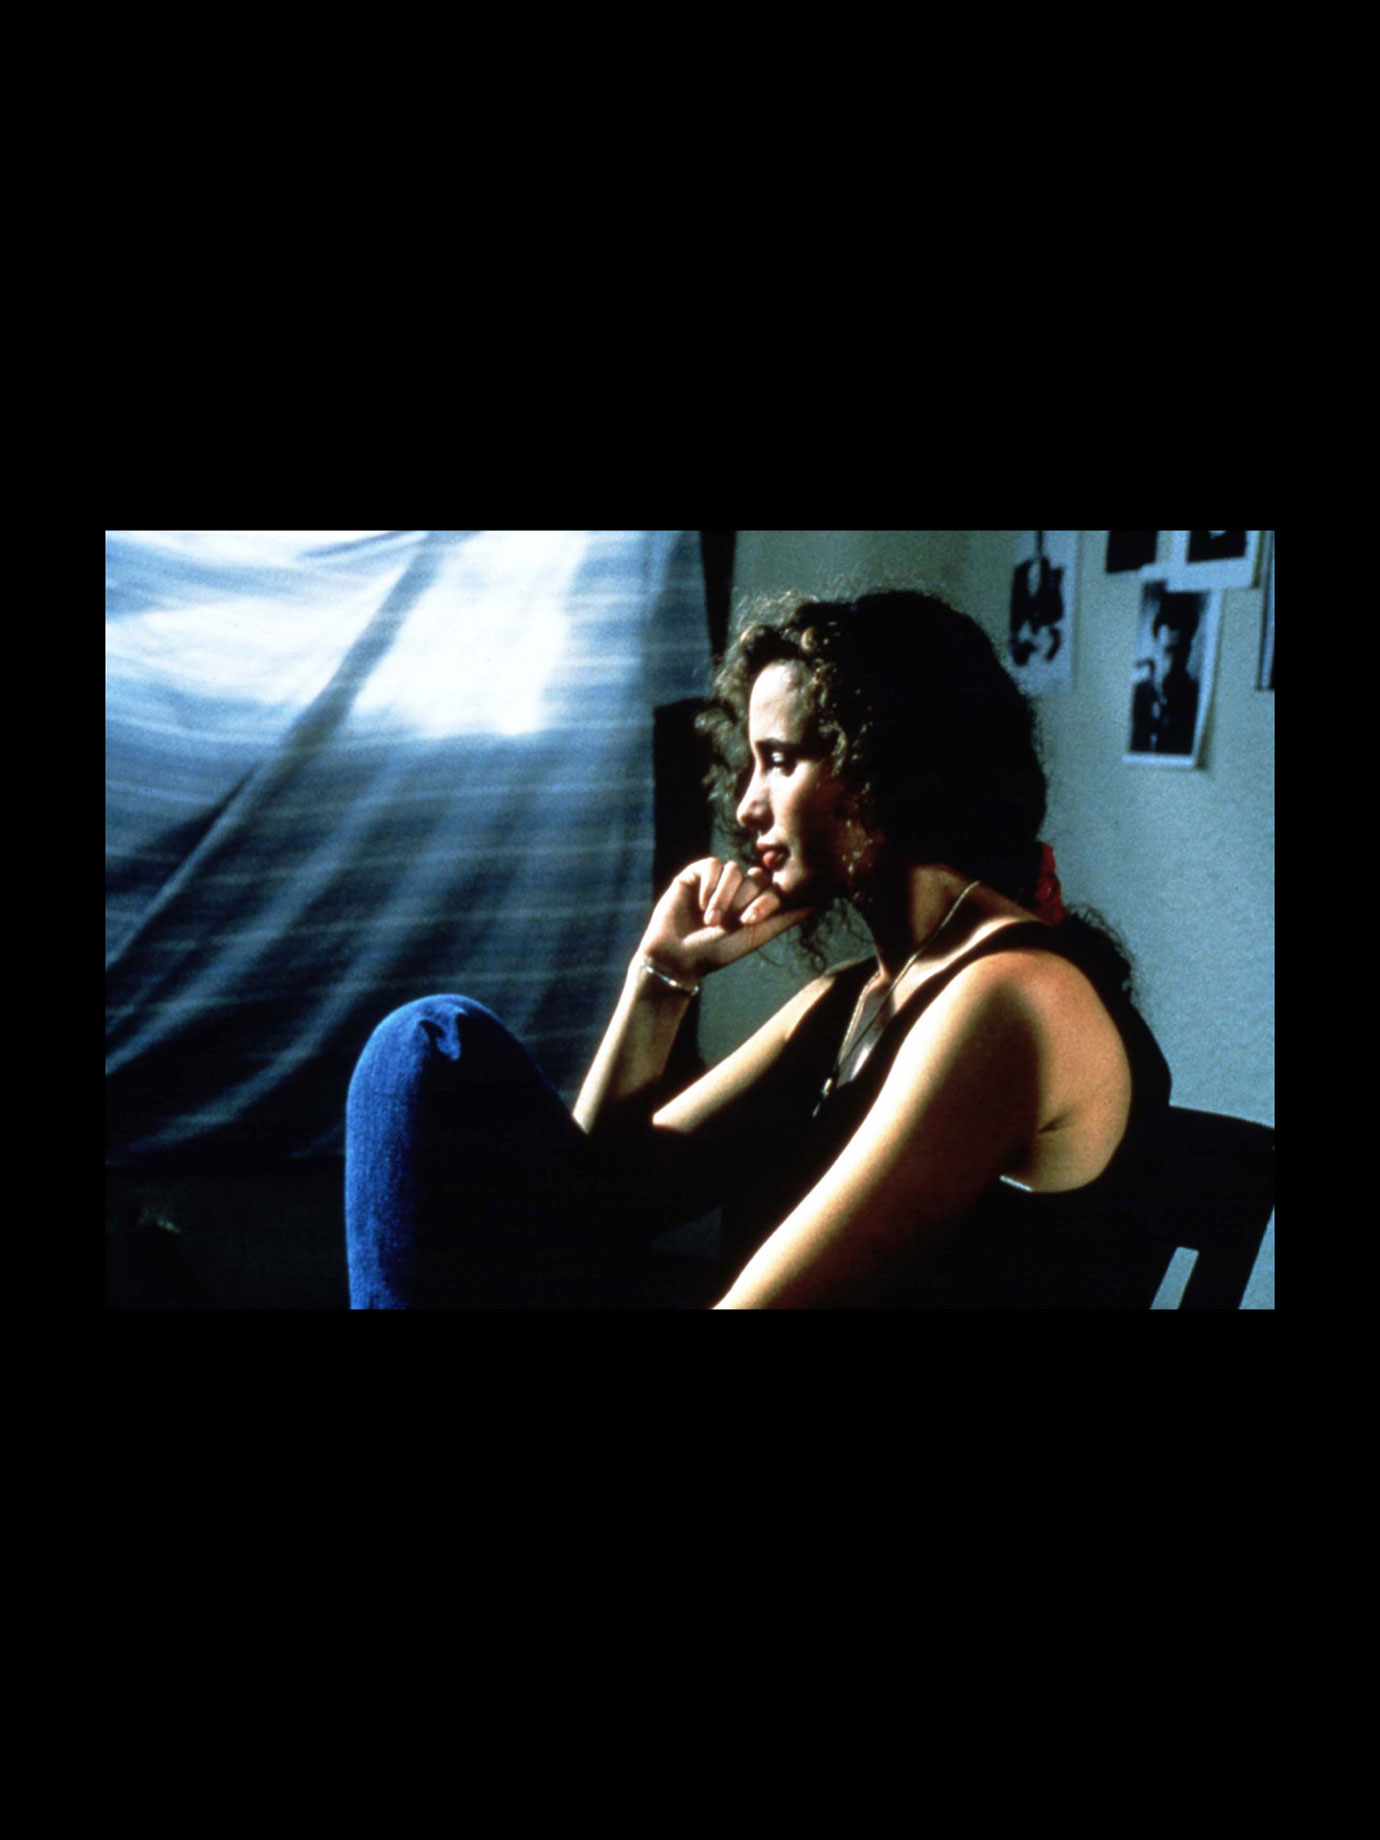 A woman sitting against a wall in a coldly lit room.